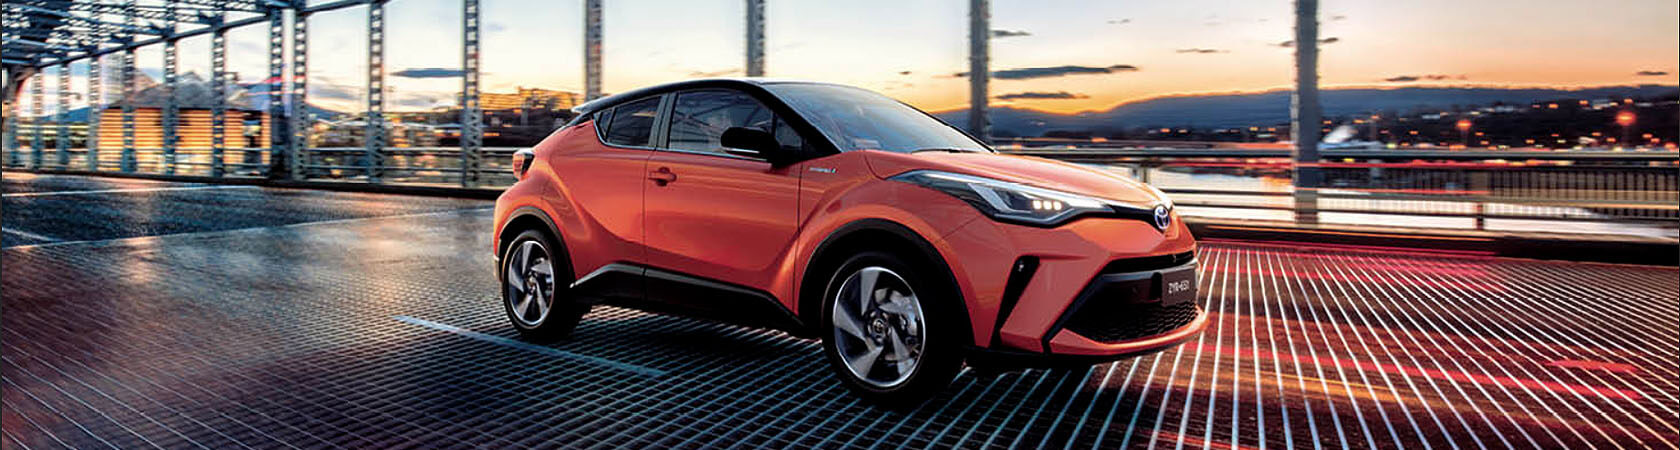 Pacific Toyota C-HR